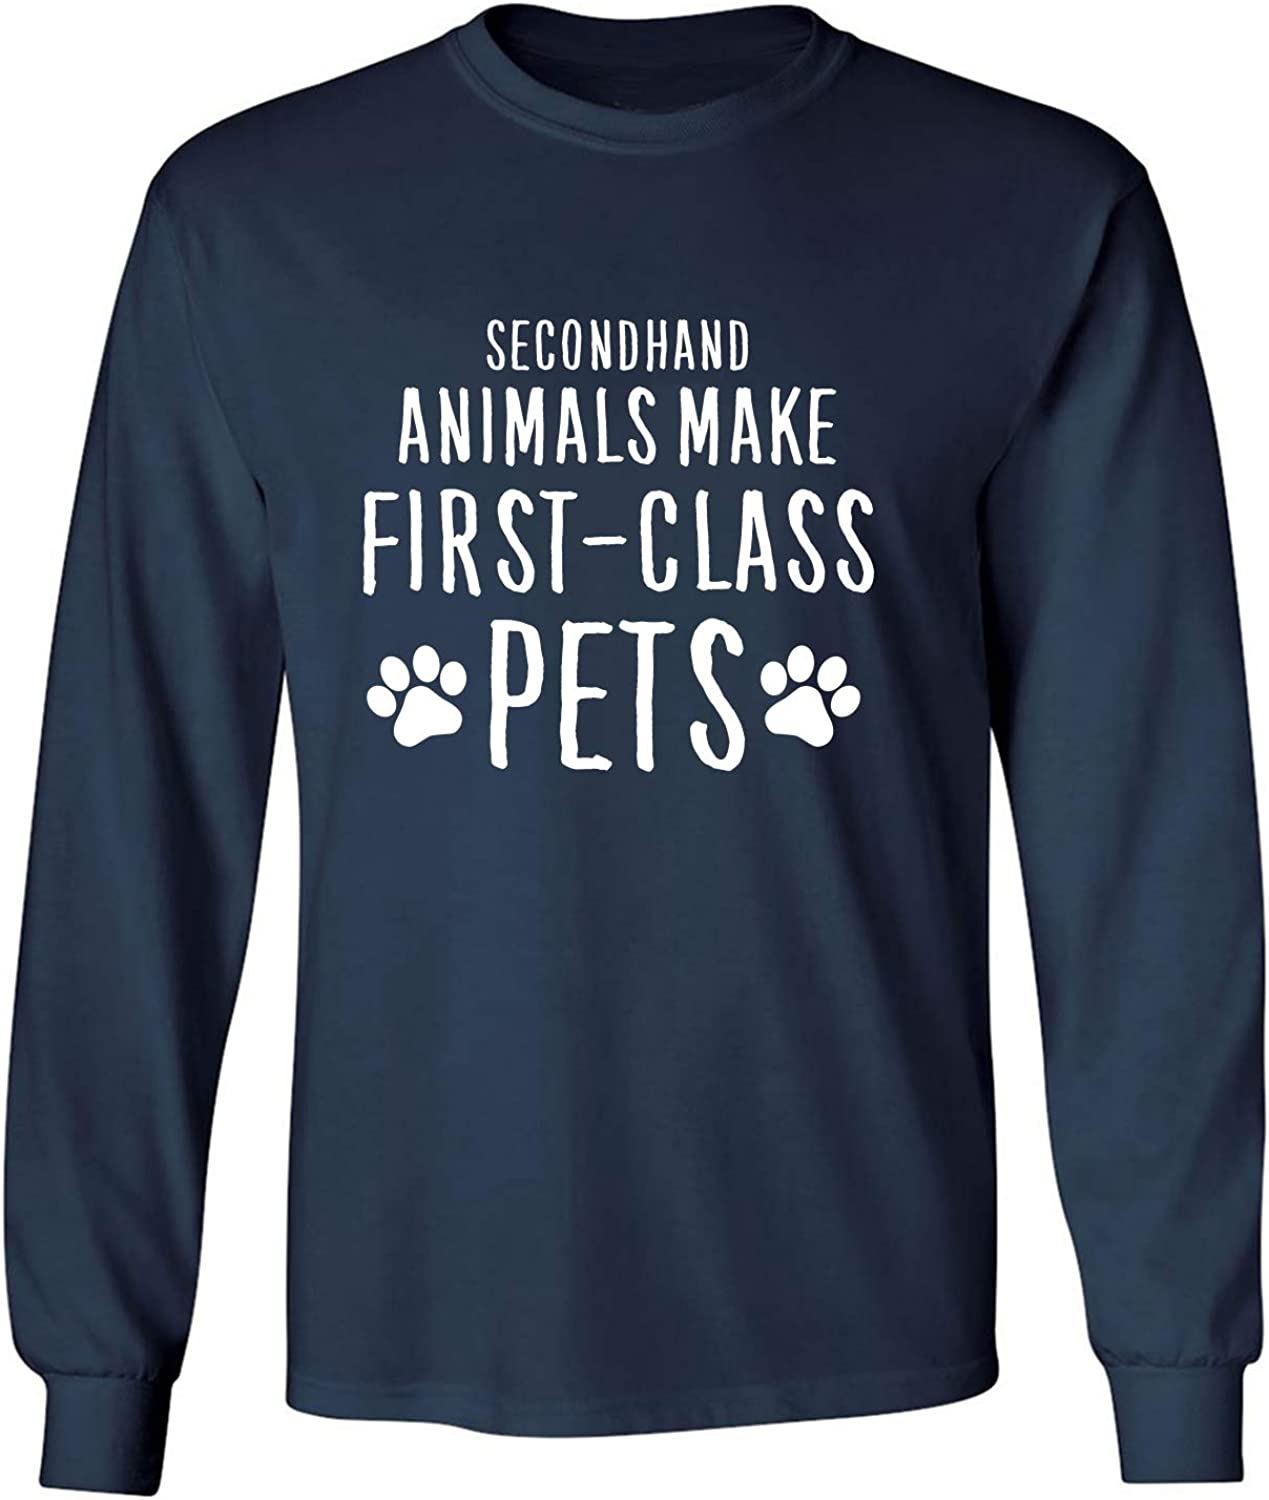 Secondhand Animals Adult Long Sleeve T-Shirt in Navy - XXXX-Large